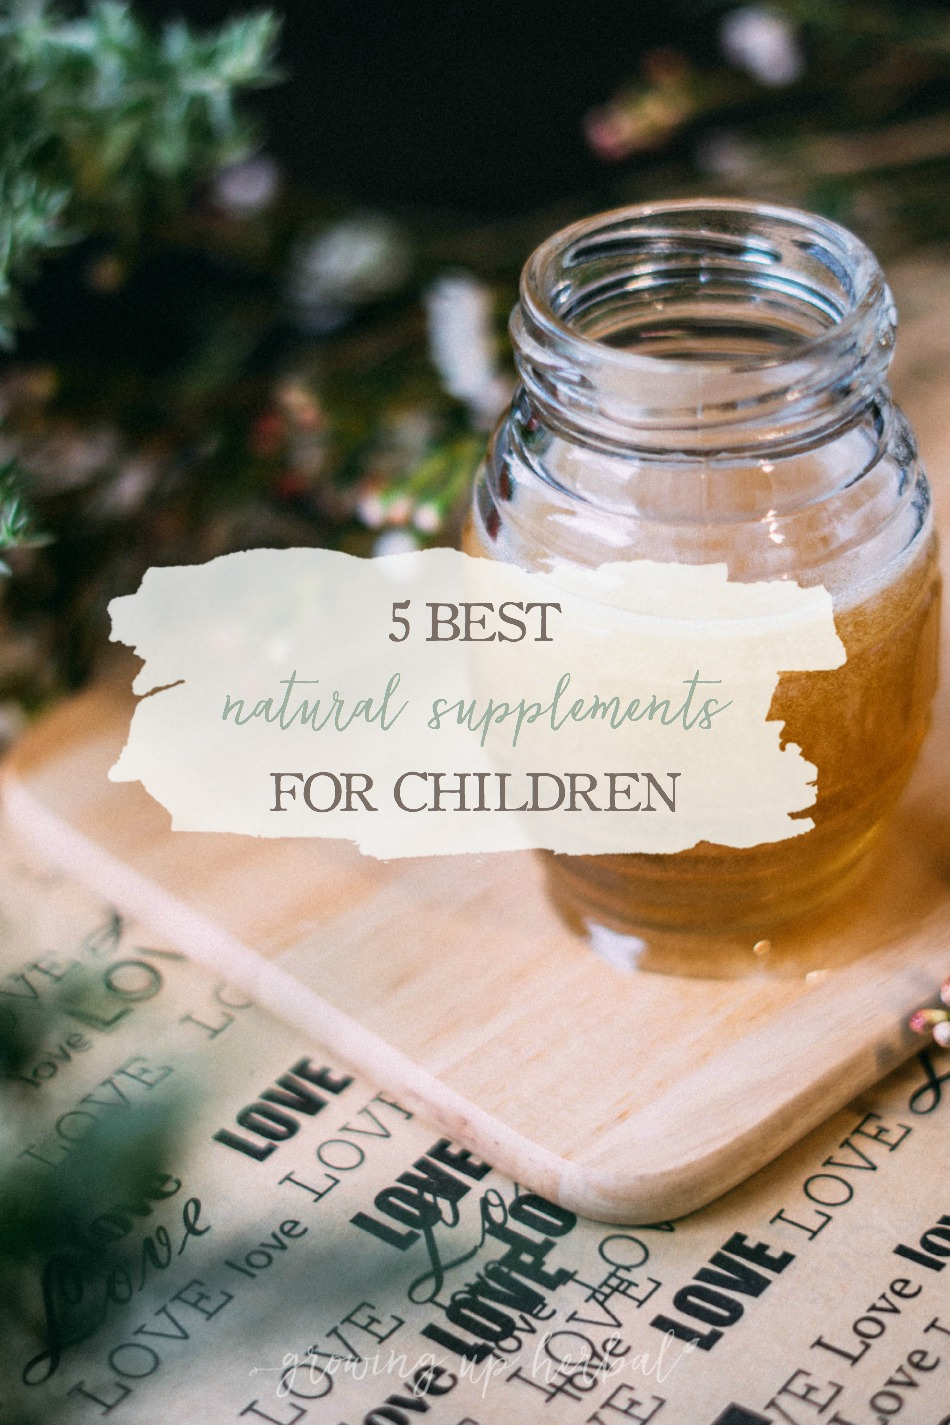 5 Best Natural Supplements For Children | Growing Up Herbal | Ever wondered which supplements you should be giving your kids? If so, here are 5 of the best to start with!